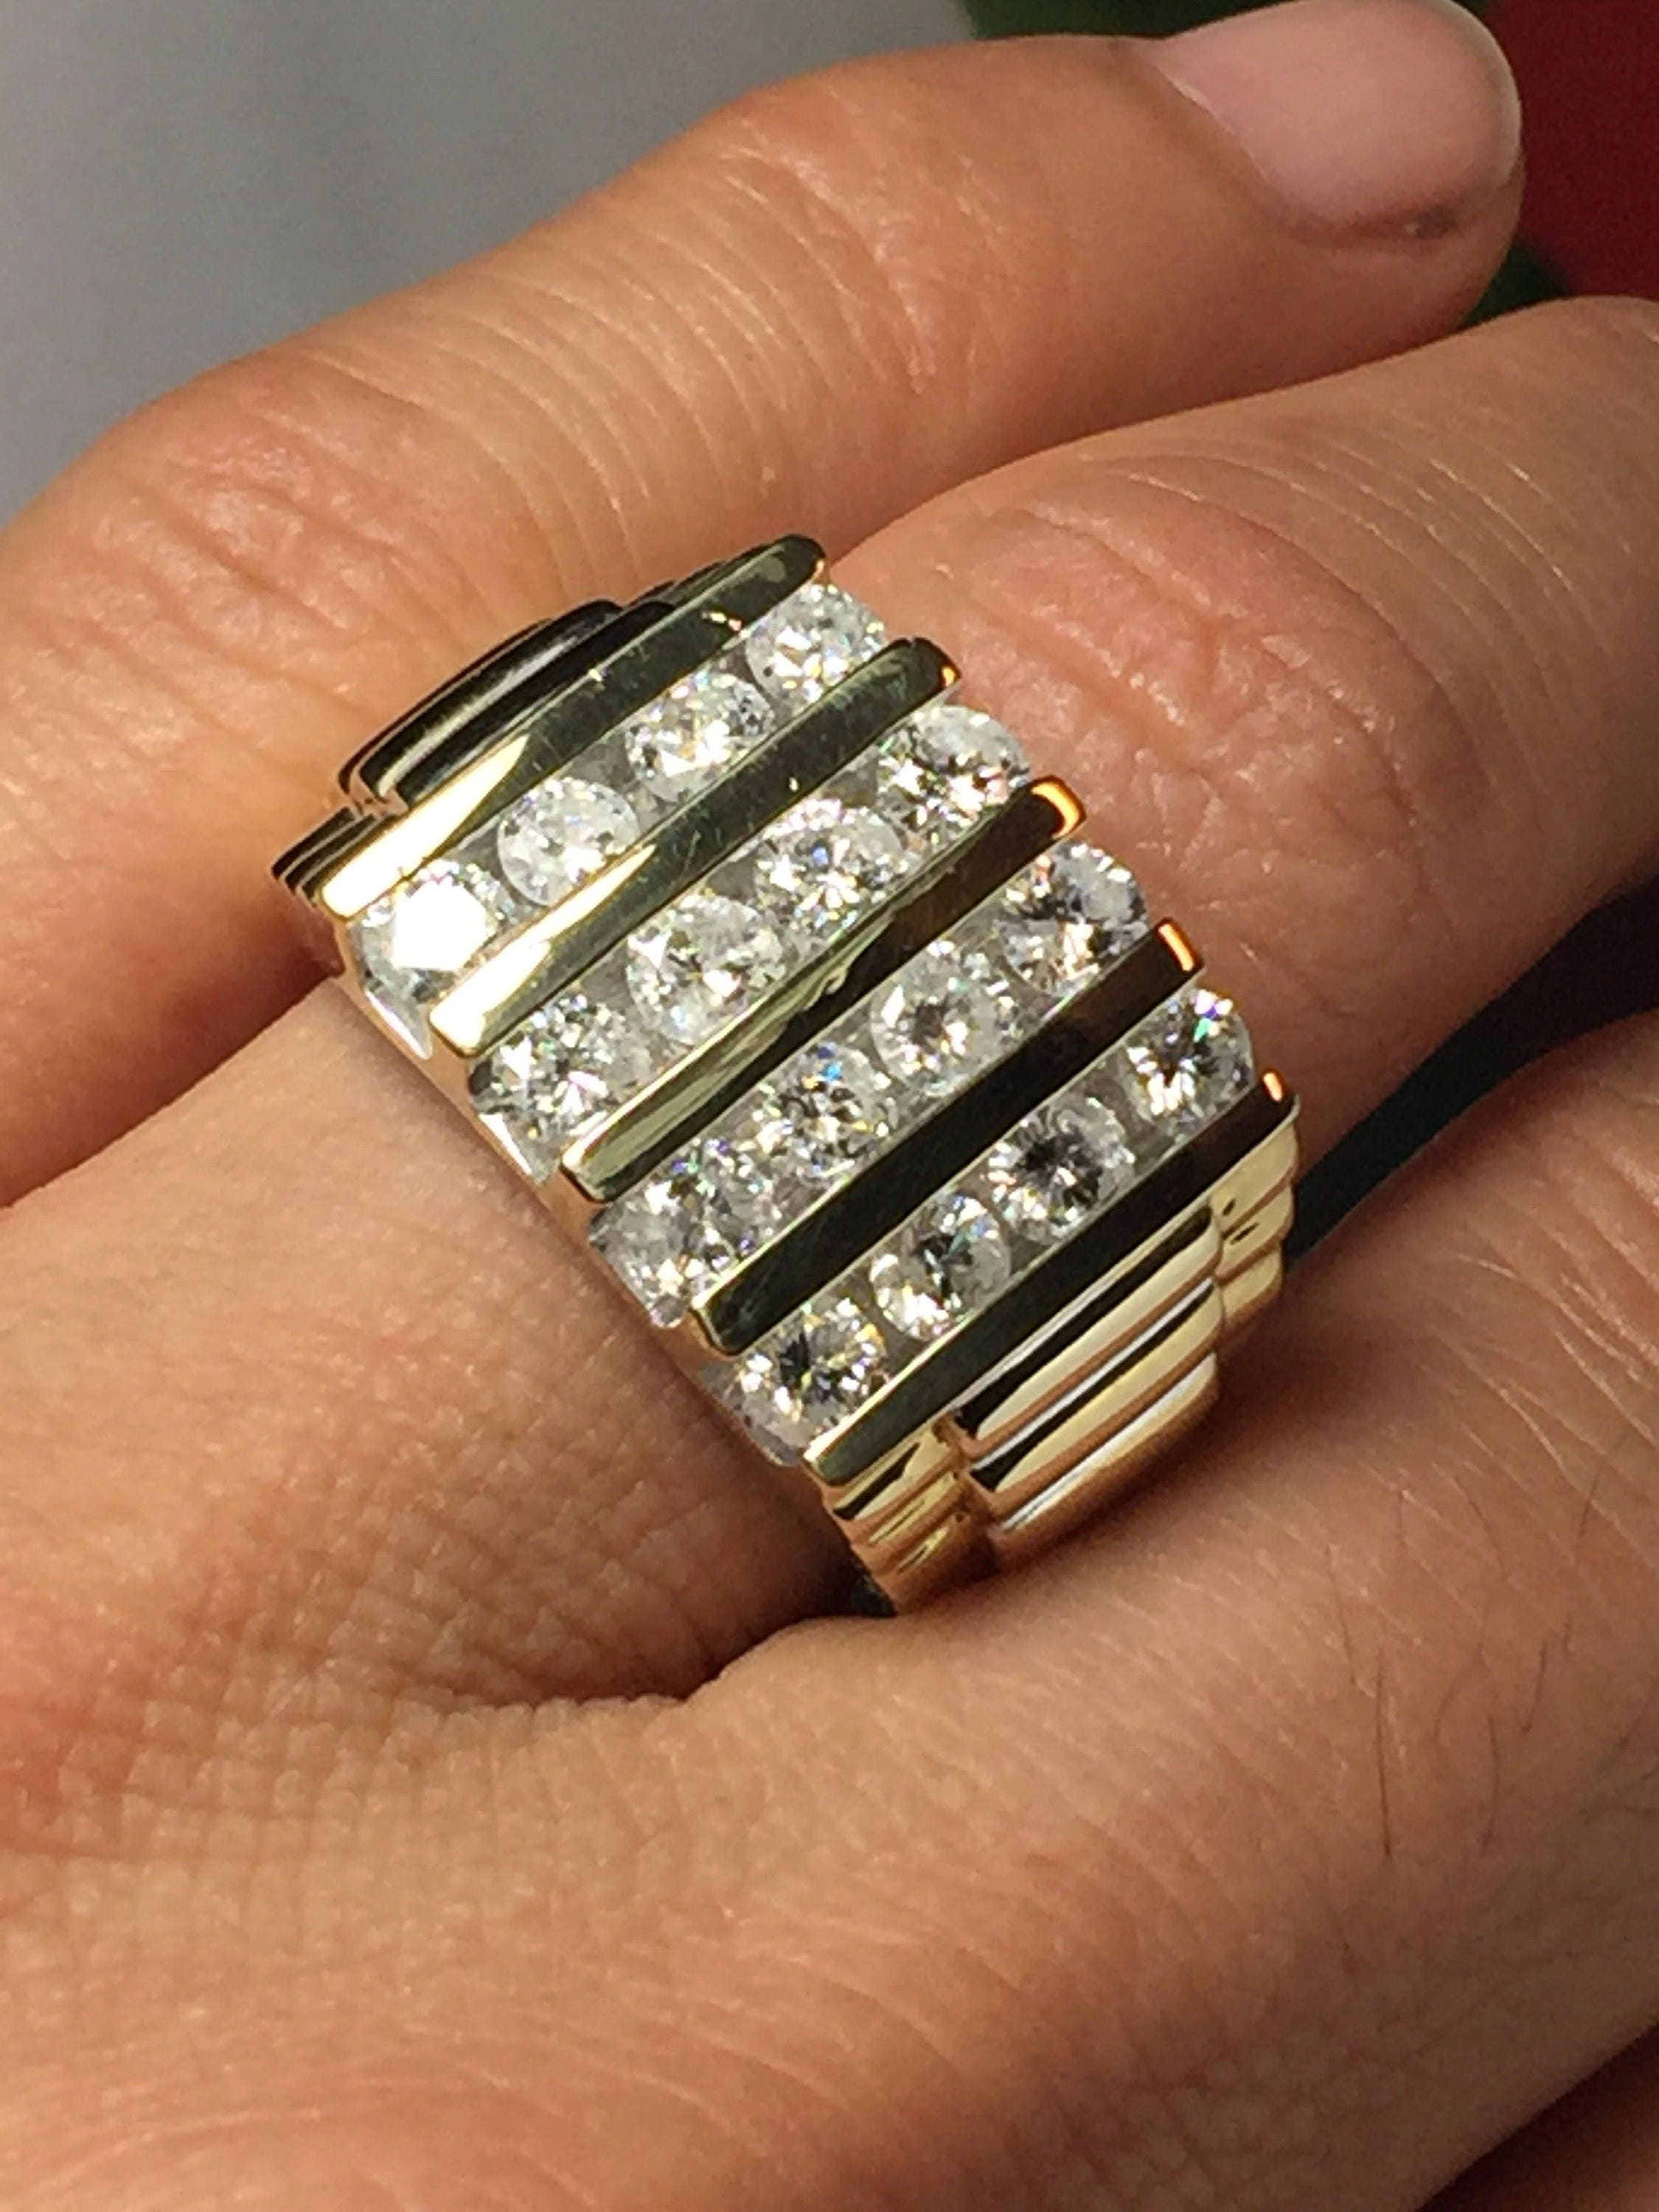 HUGE Rolex Ring Men Diamond Rolex Ring Man Gold Ring Men